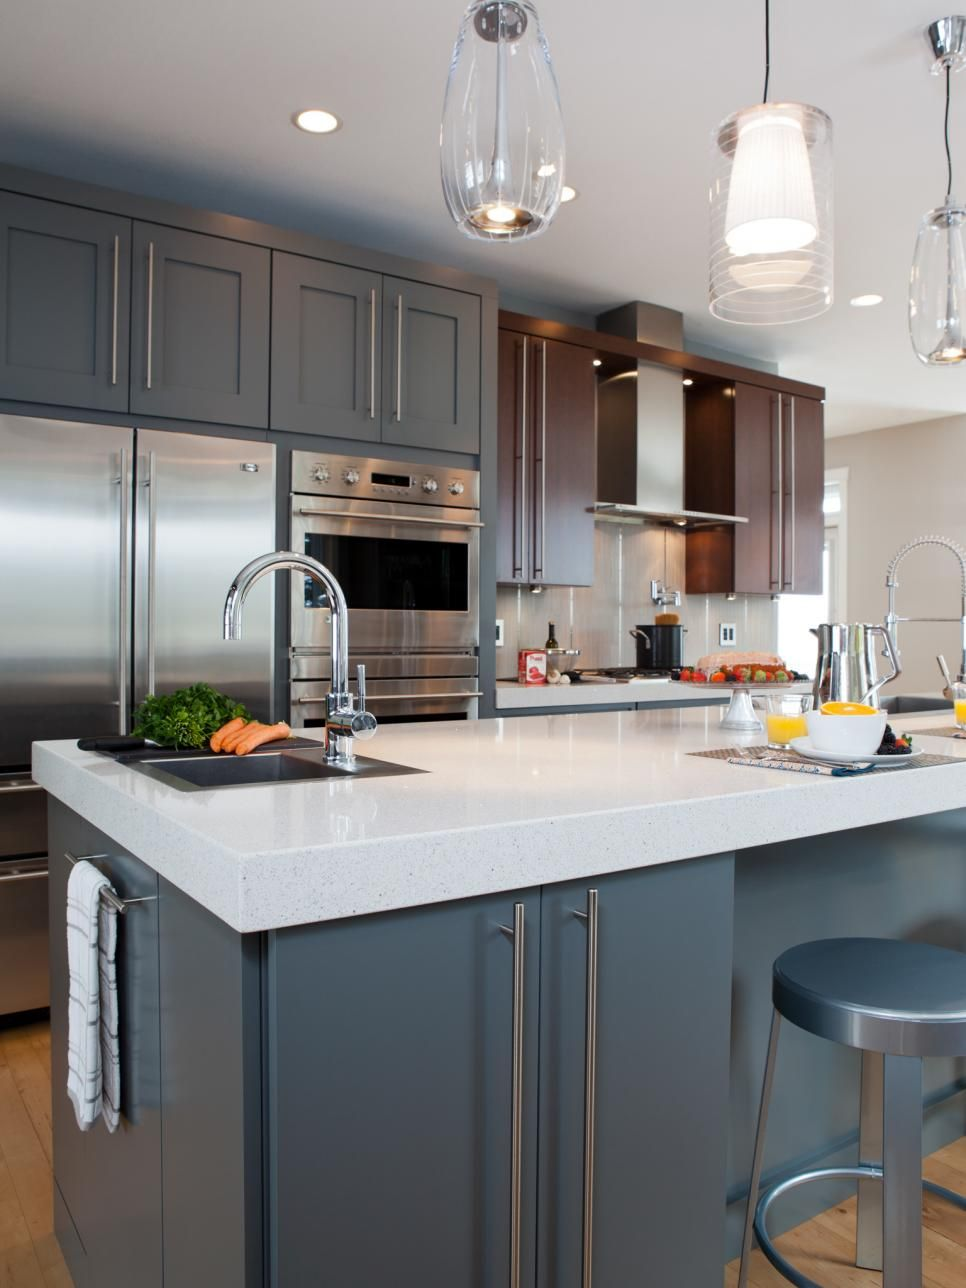 long cabinet pulls travel the full height of the door adding a vertical design mid century on kitchen cabinets modern contemporary id=51893